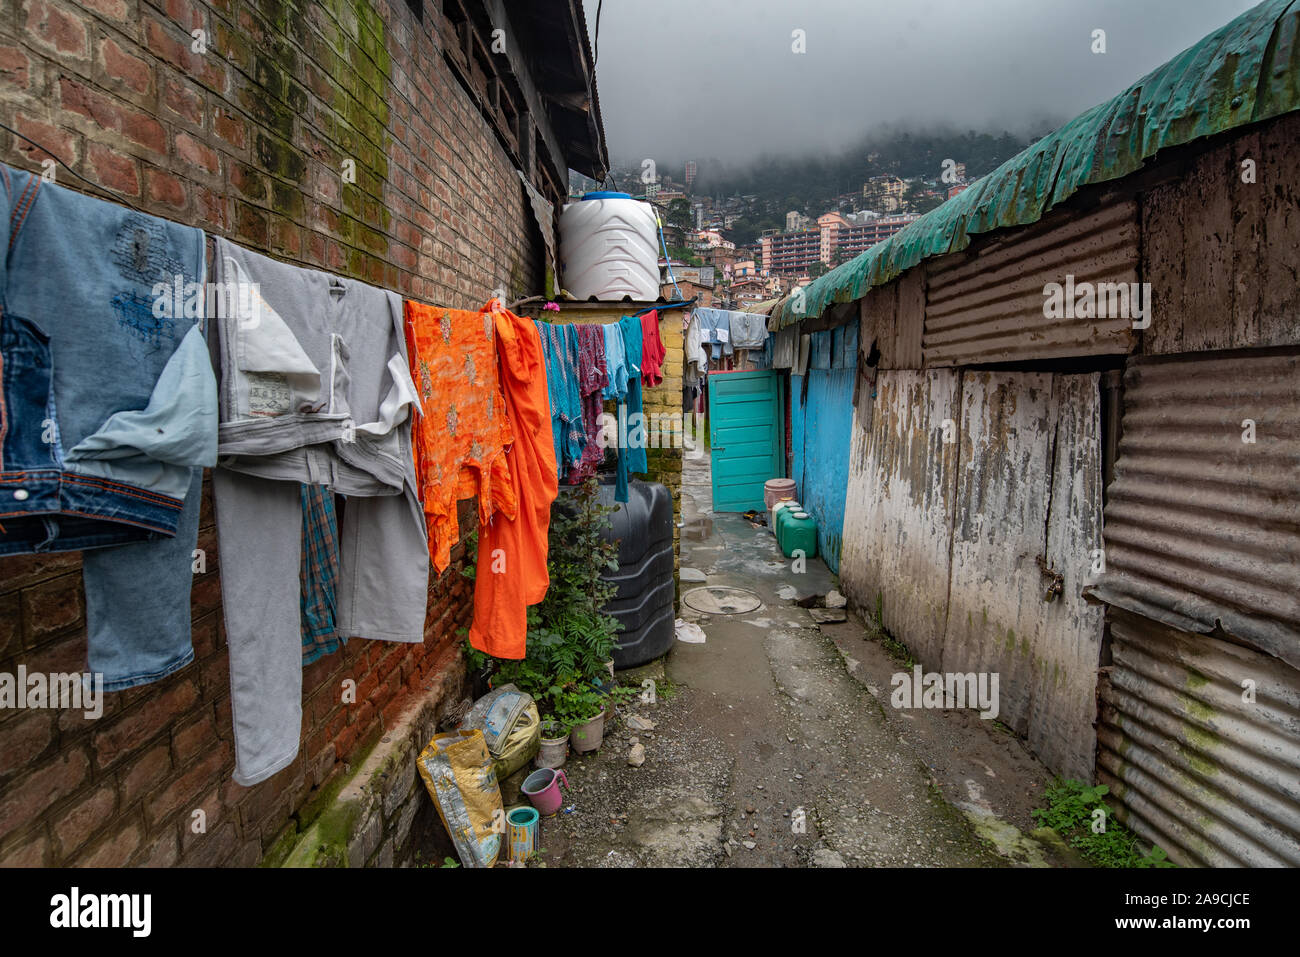 View of a street in Shimla showing clothes drying and water containers outside homes amidst heavy monsoons and water shortage Stock Photo